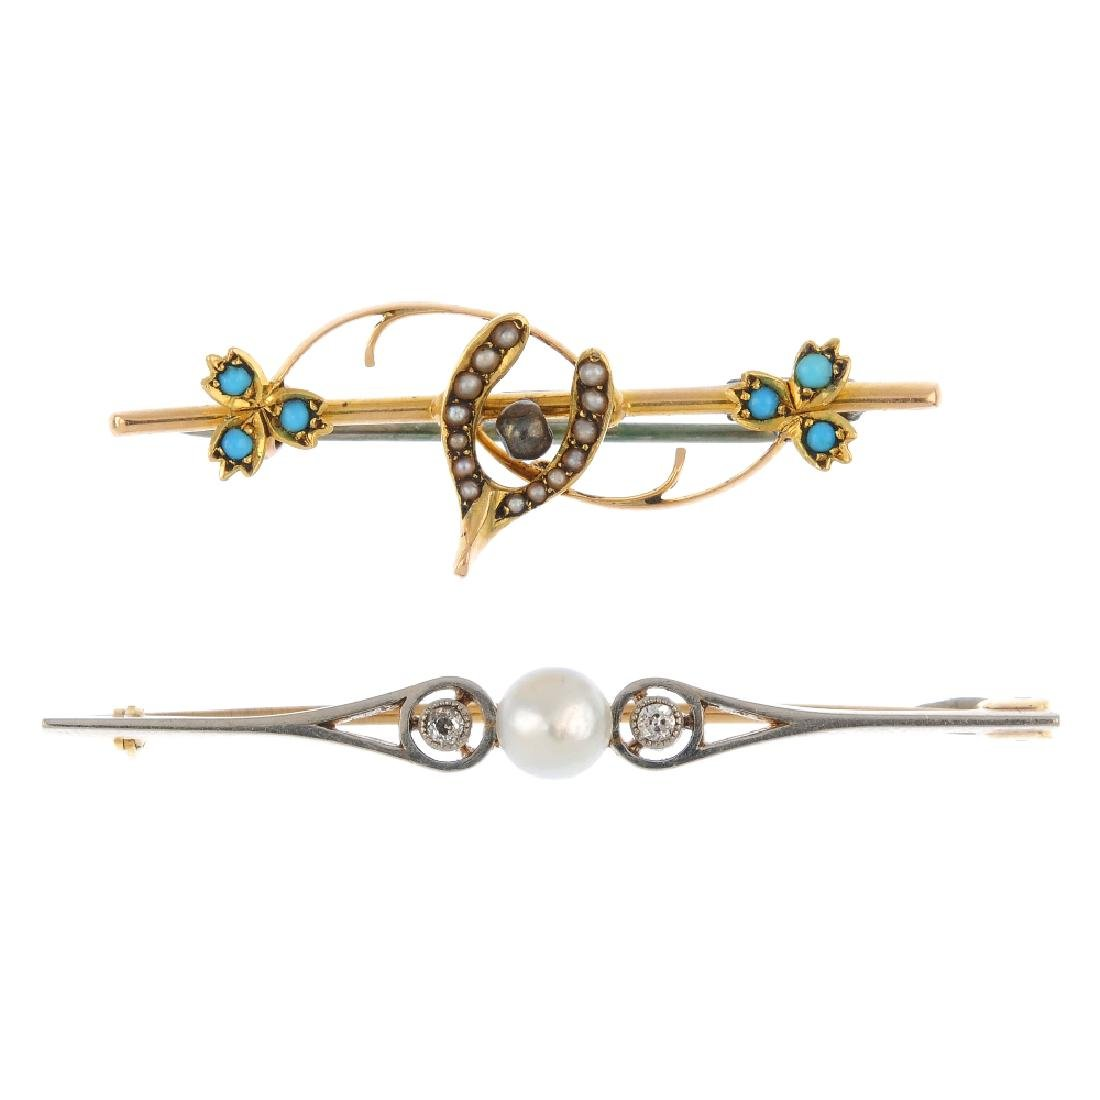 Two diamond and gem-set brooches. To include an early